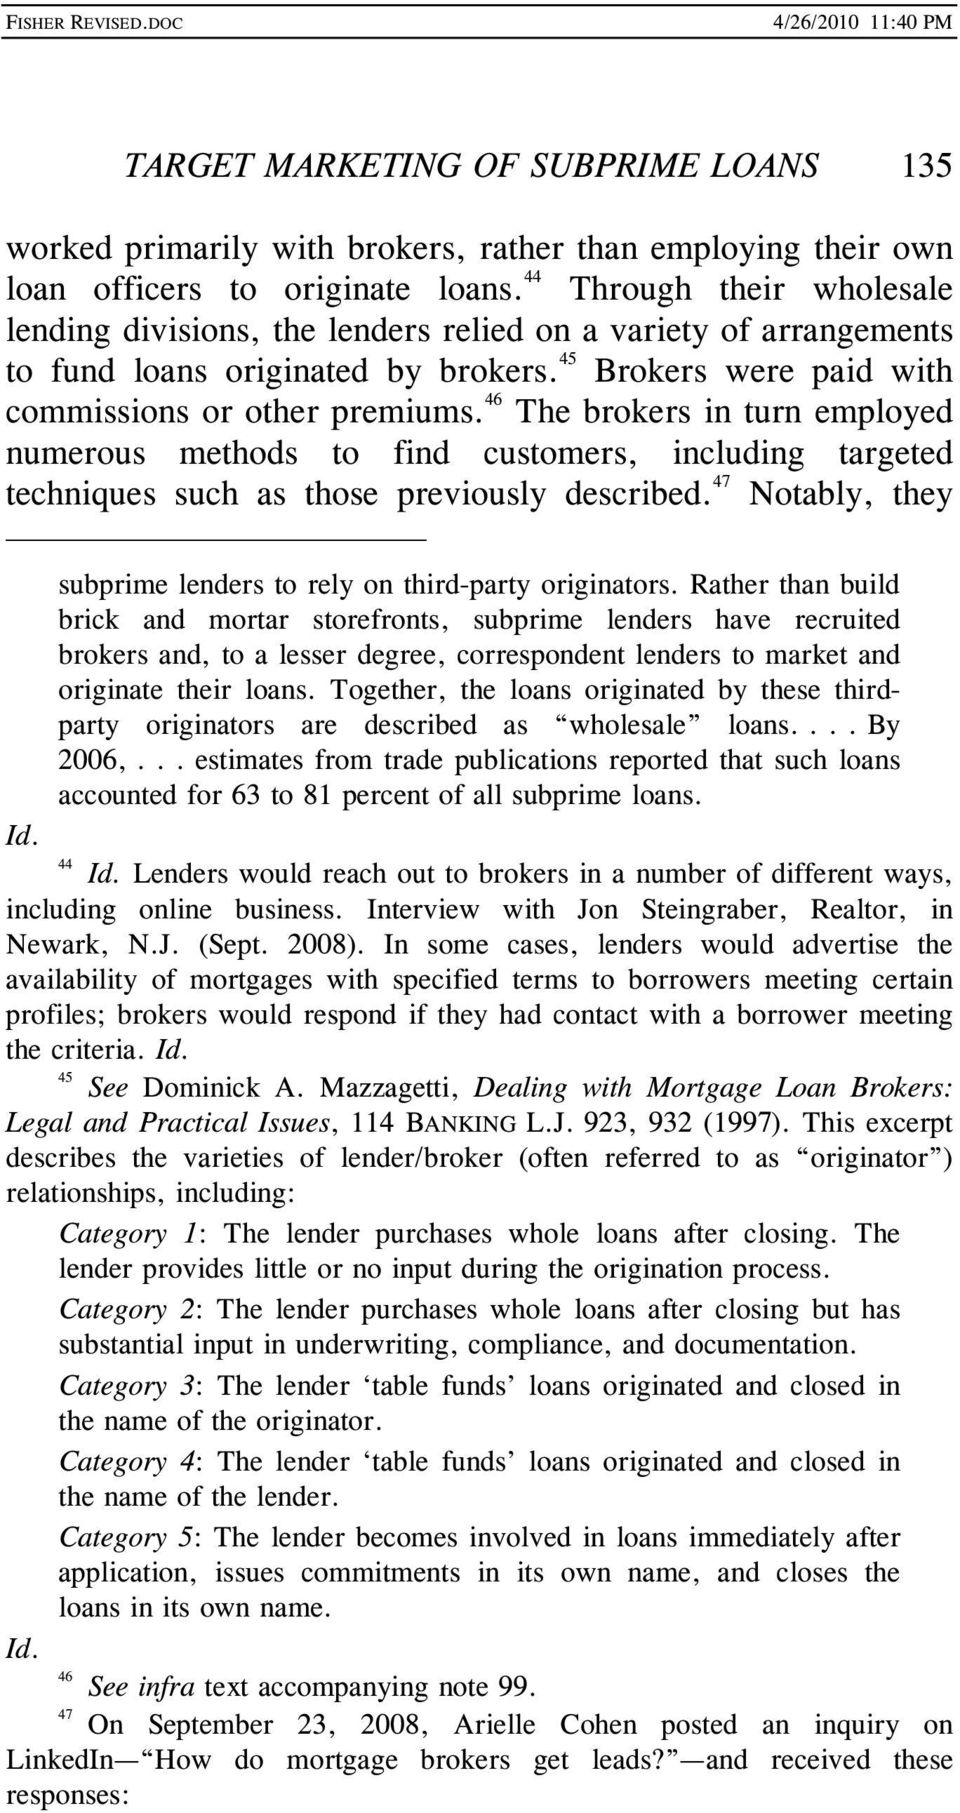 46 The brokers in turn employed numerous methods to find customers, including targeted techniques such as those previously described.